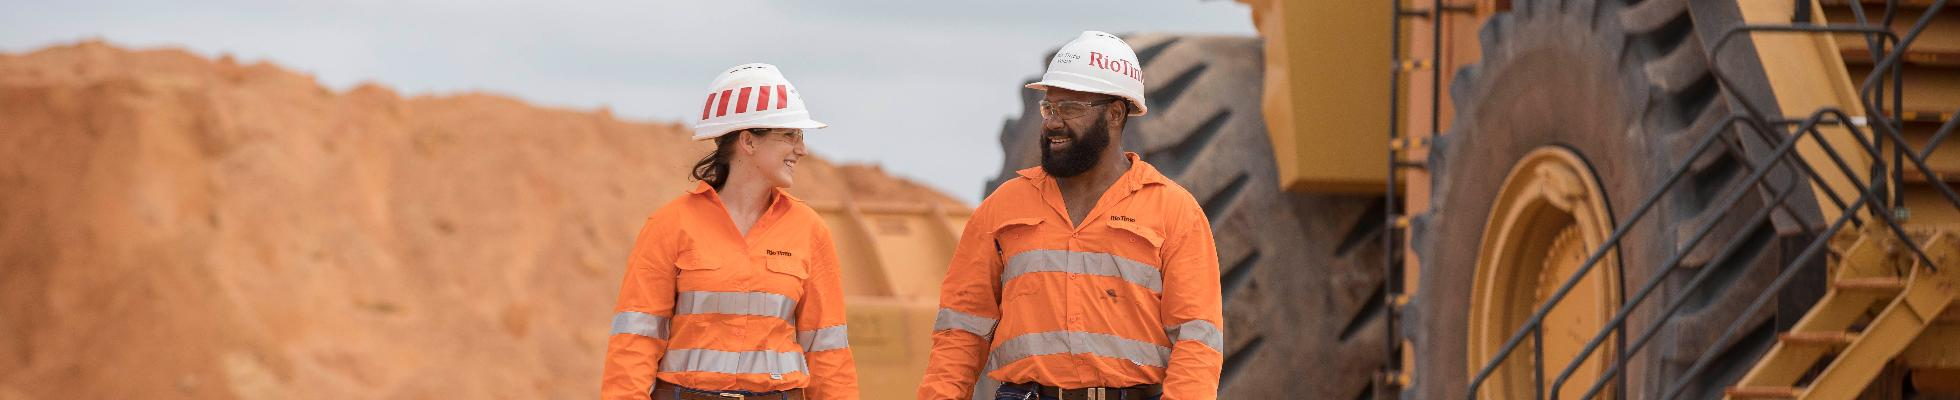 Working at Rio Tinto: 142 Reviews | Indeed com